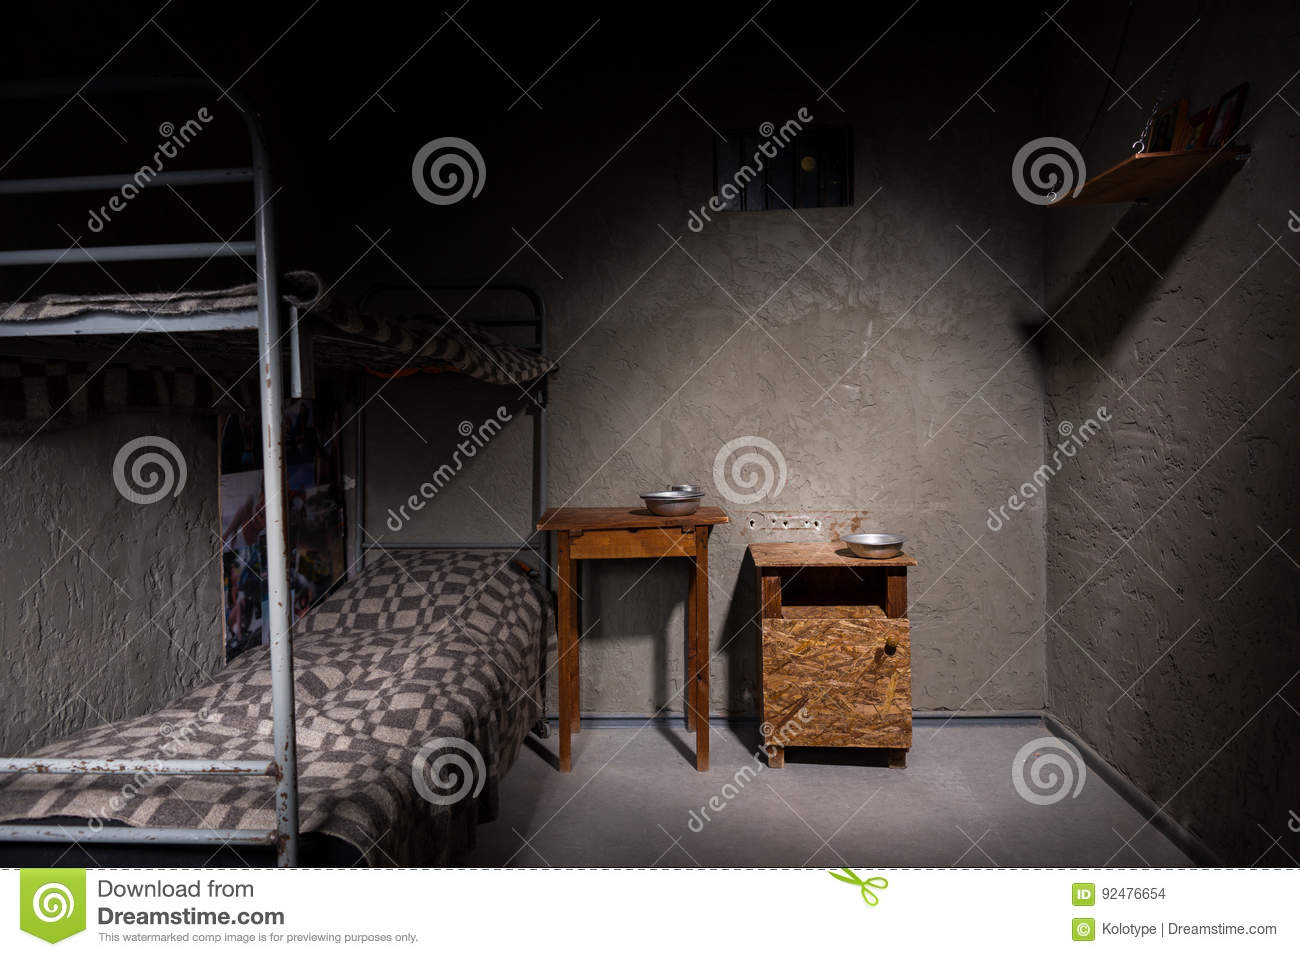 Dark Empty Jail Cell With Iron Bunk Bed And Bedside Table Stock